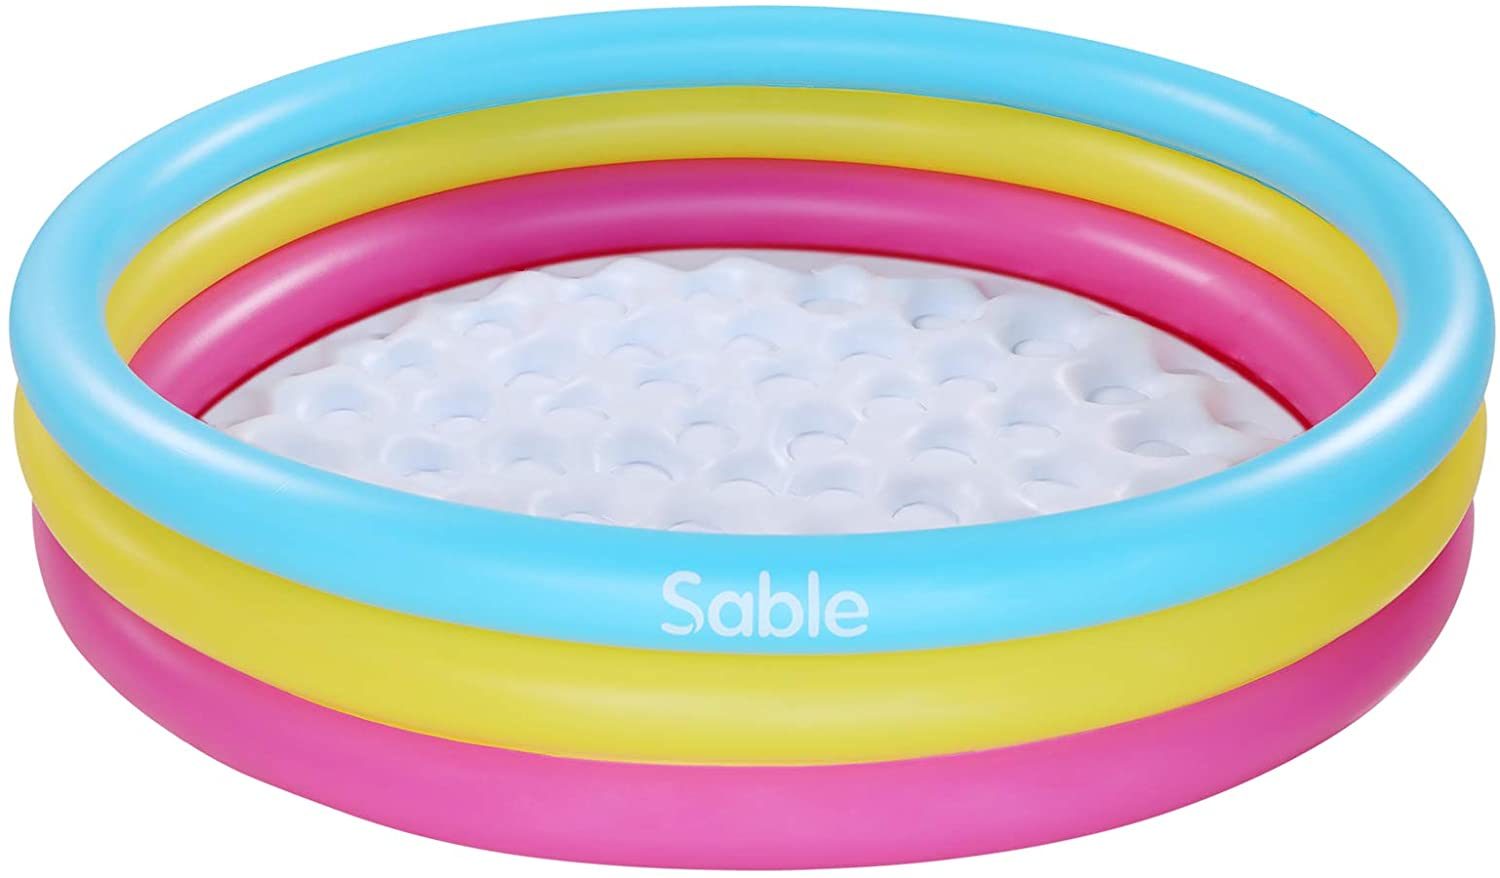 Sable Kiddie Pool, Blow Up Inflatable Baby Pool, 58